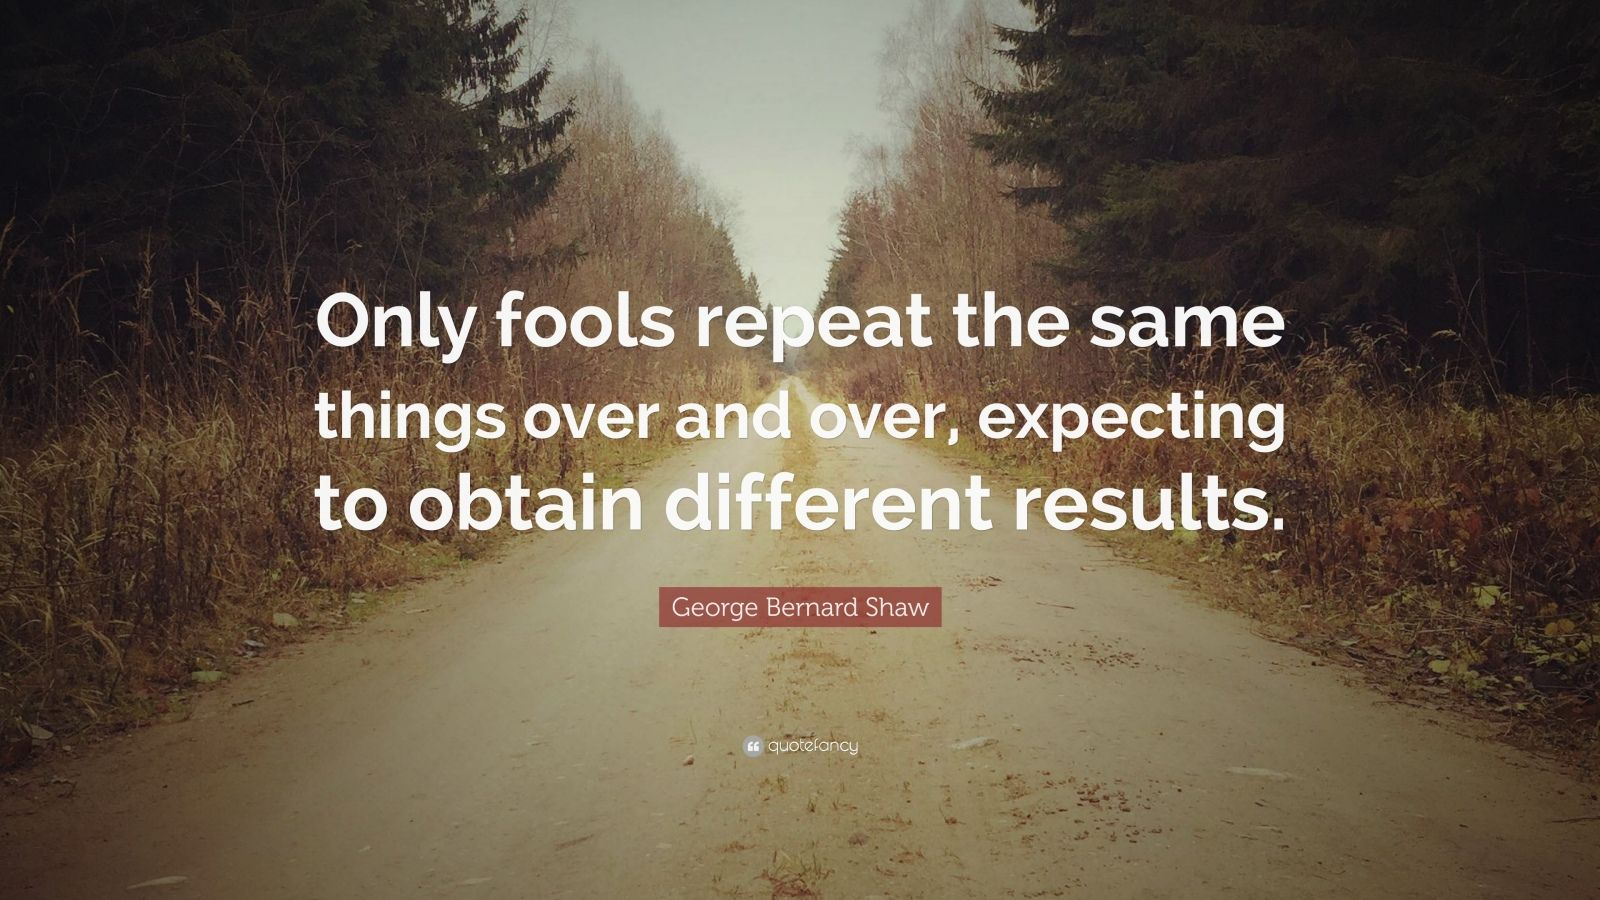 """George Bernard Shaw Quote: """"Only fools repeat the same things over and over, expecting to obtain different results."""""""